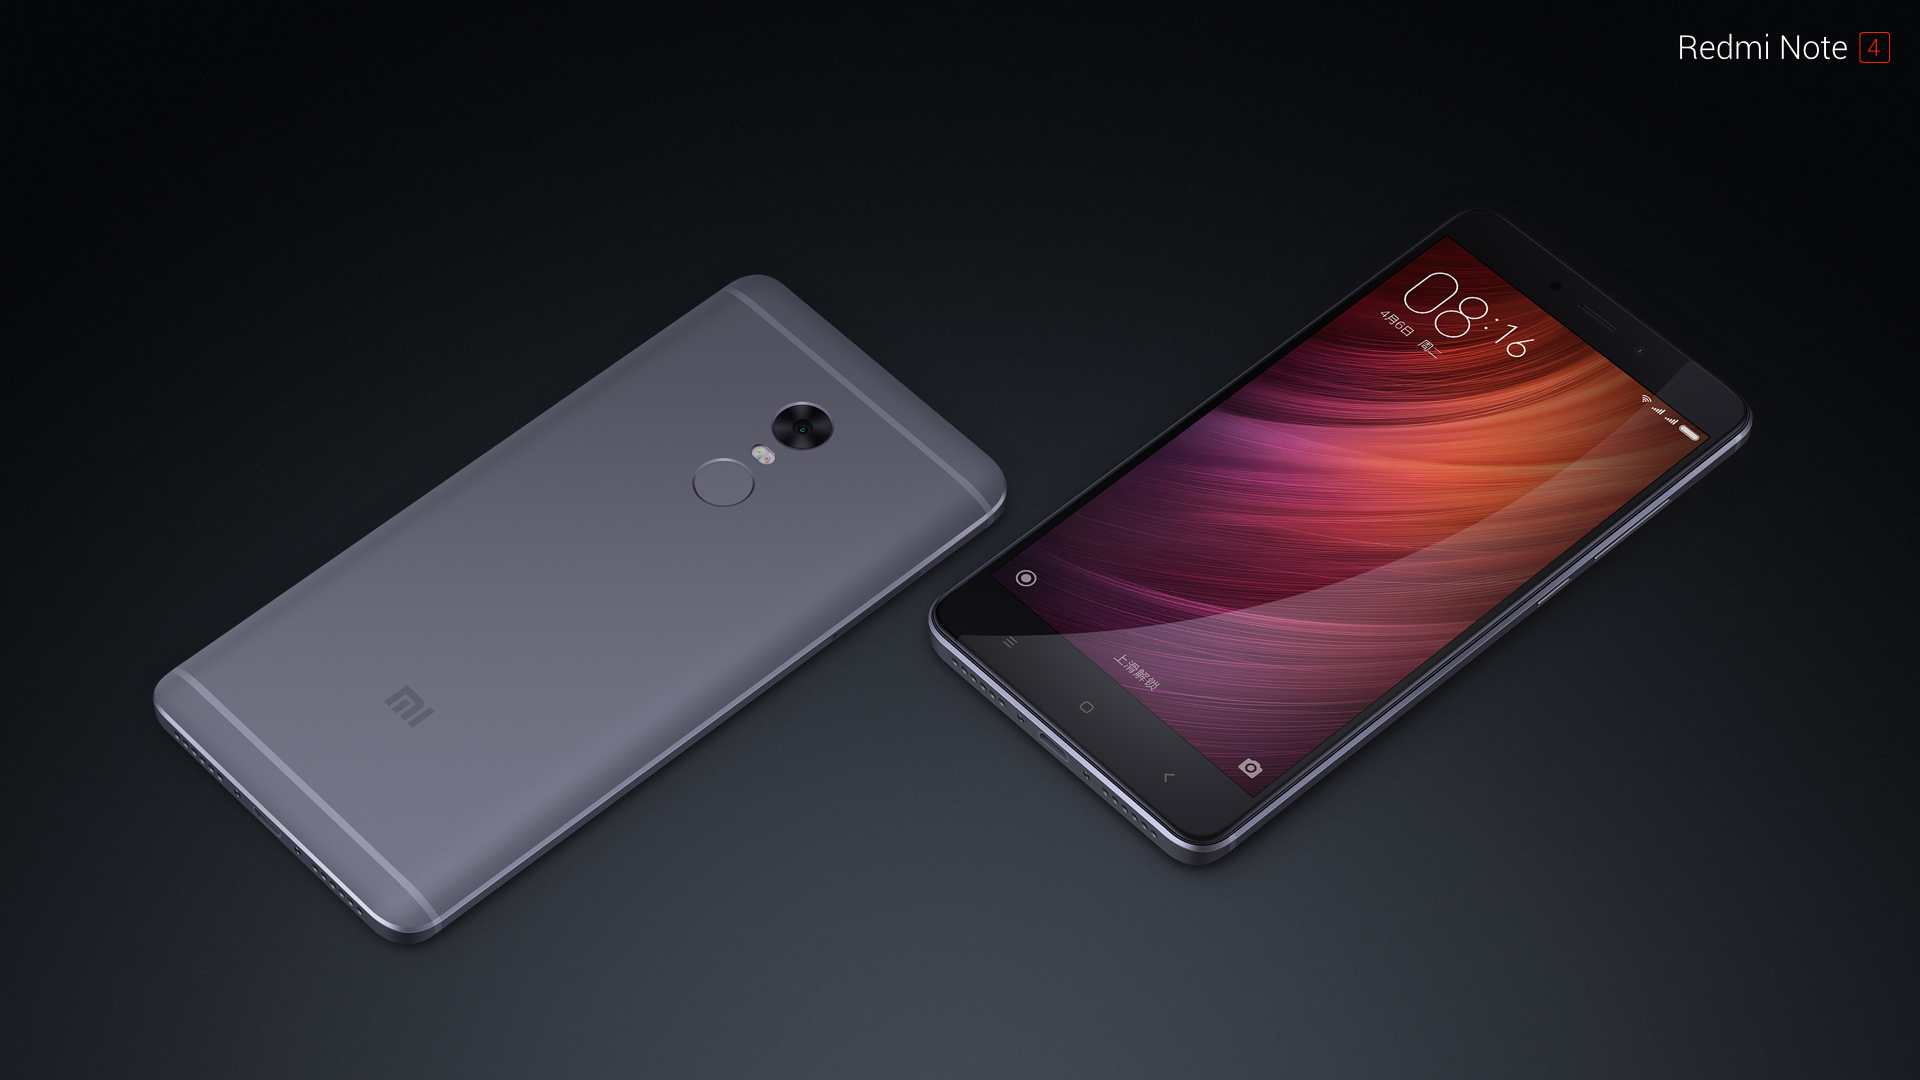 Project Treble compatibility unofficially ported to Xiaomi